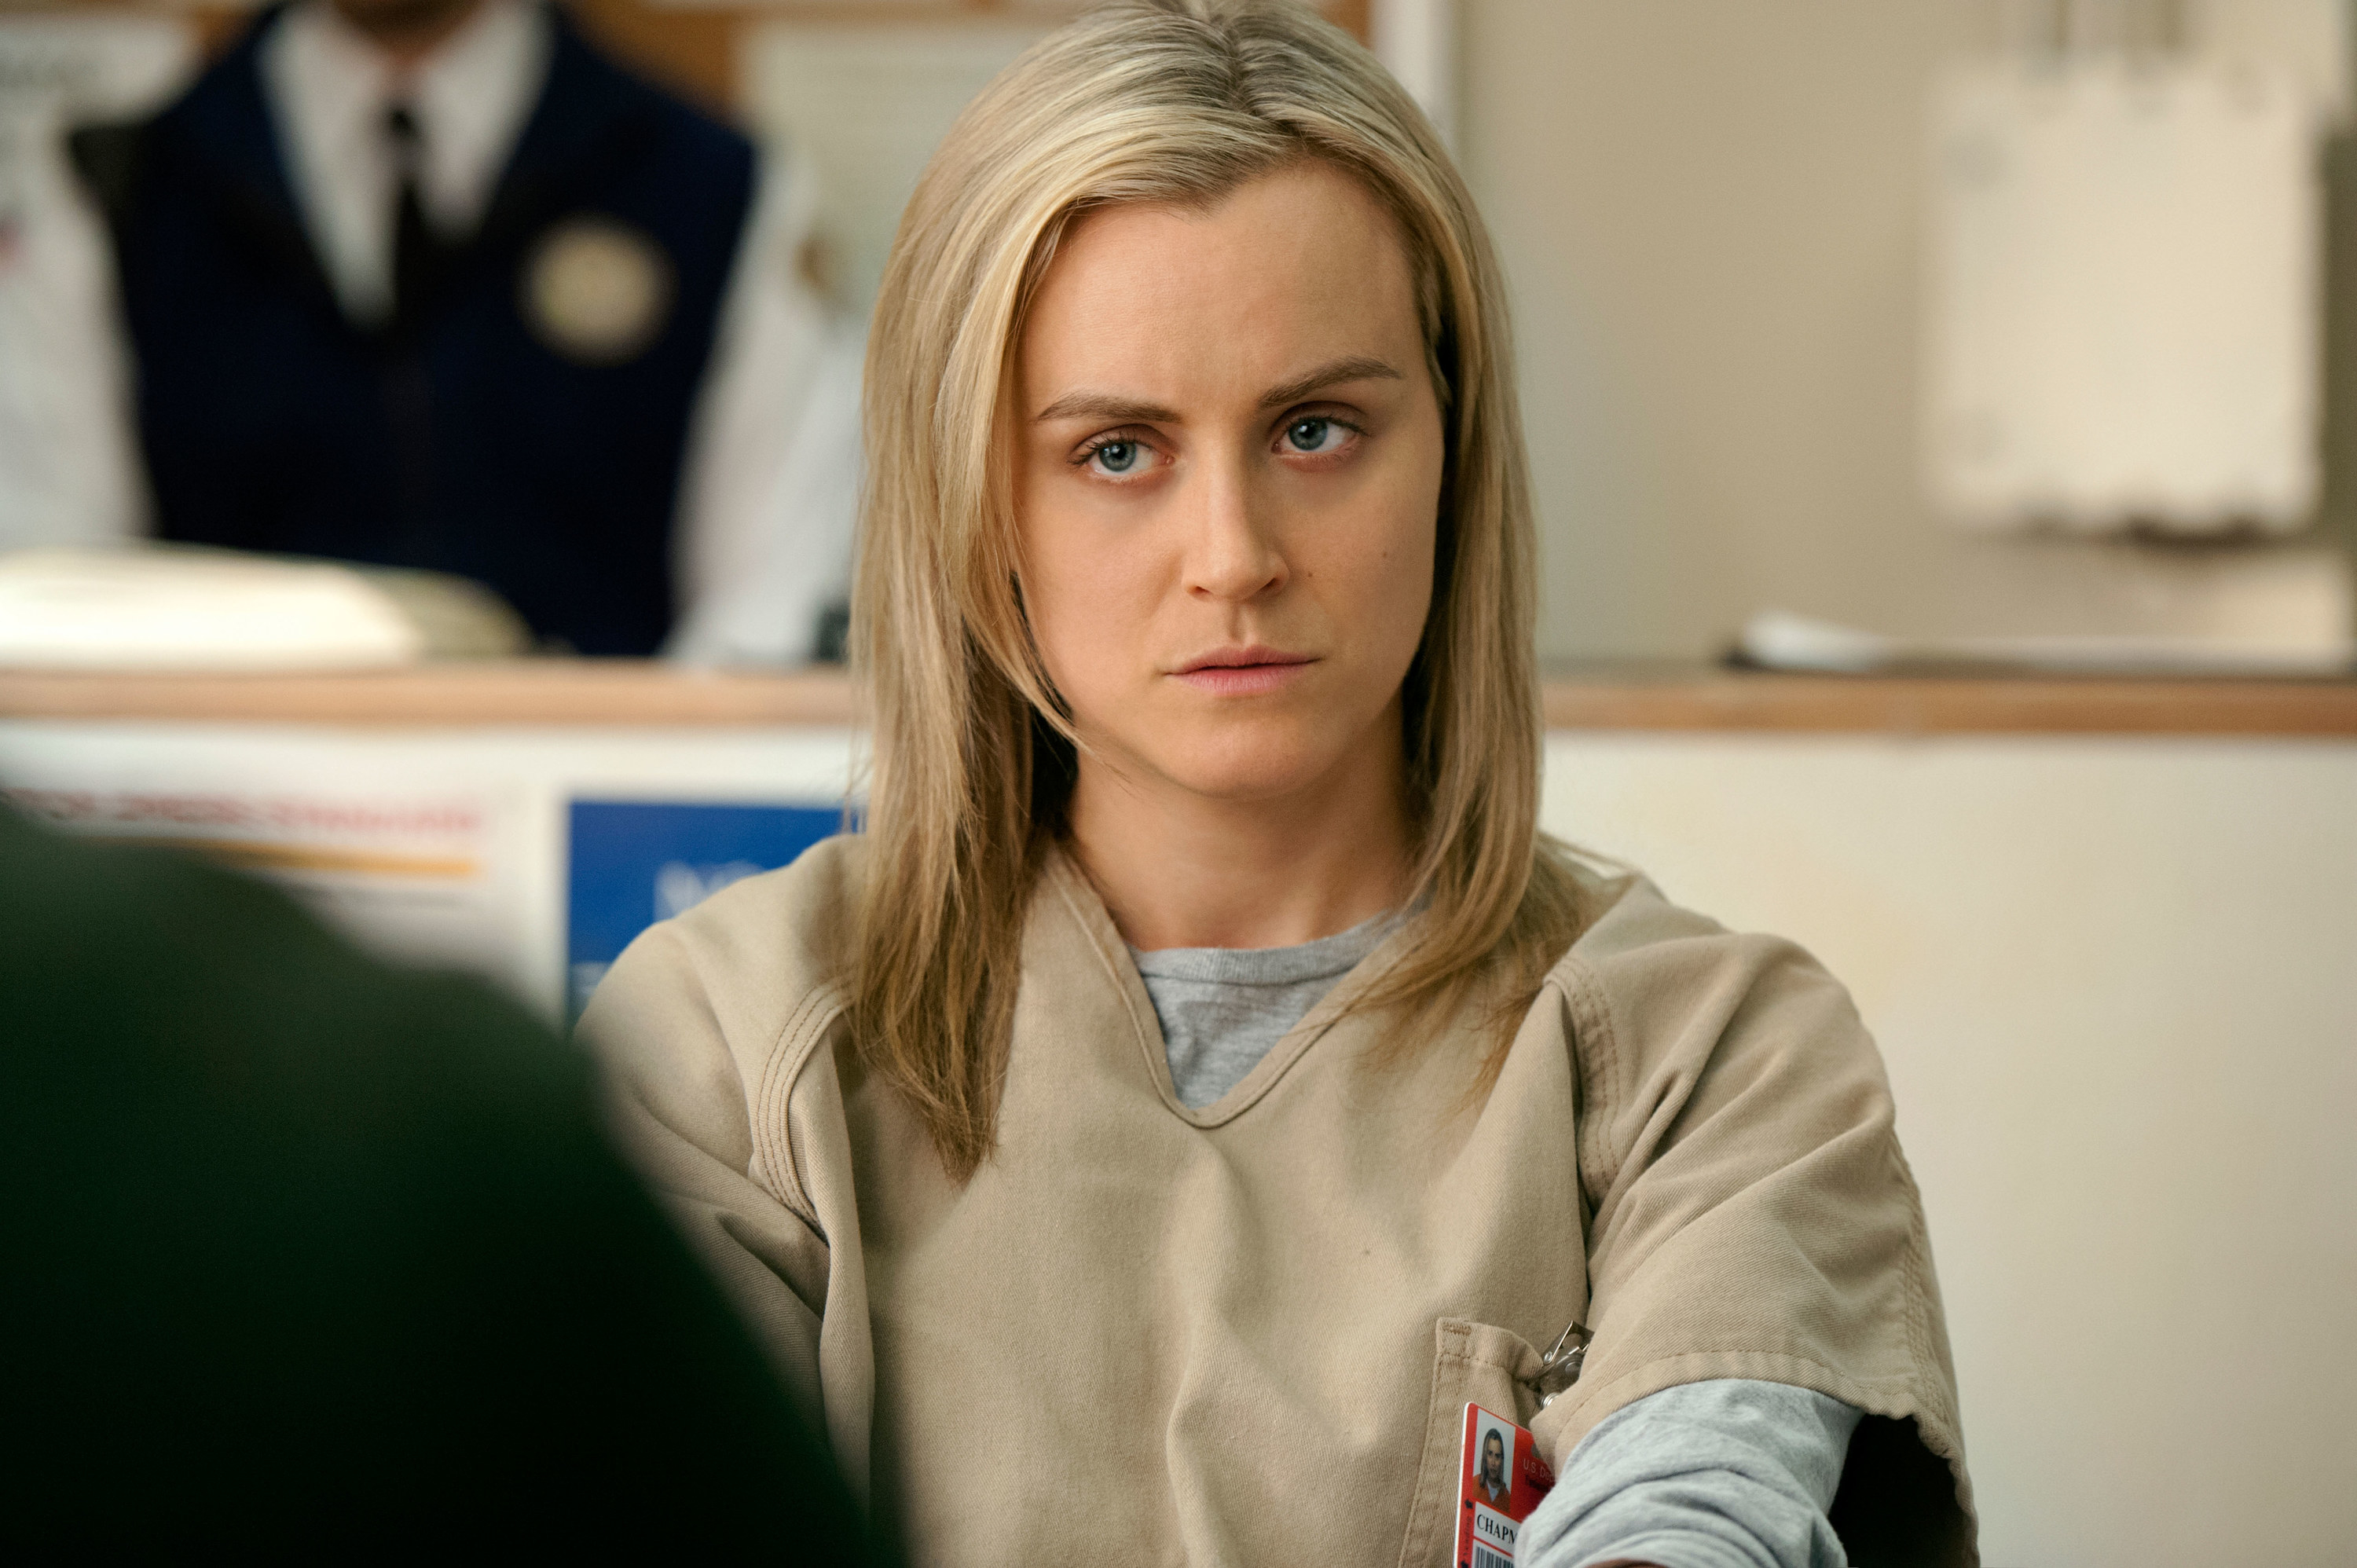 Piper looking sternly at someone